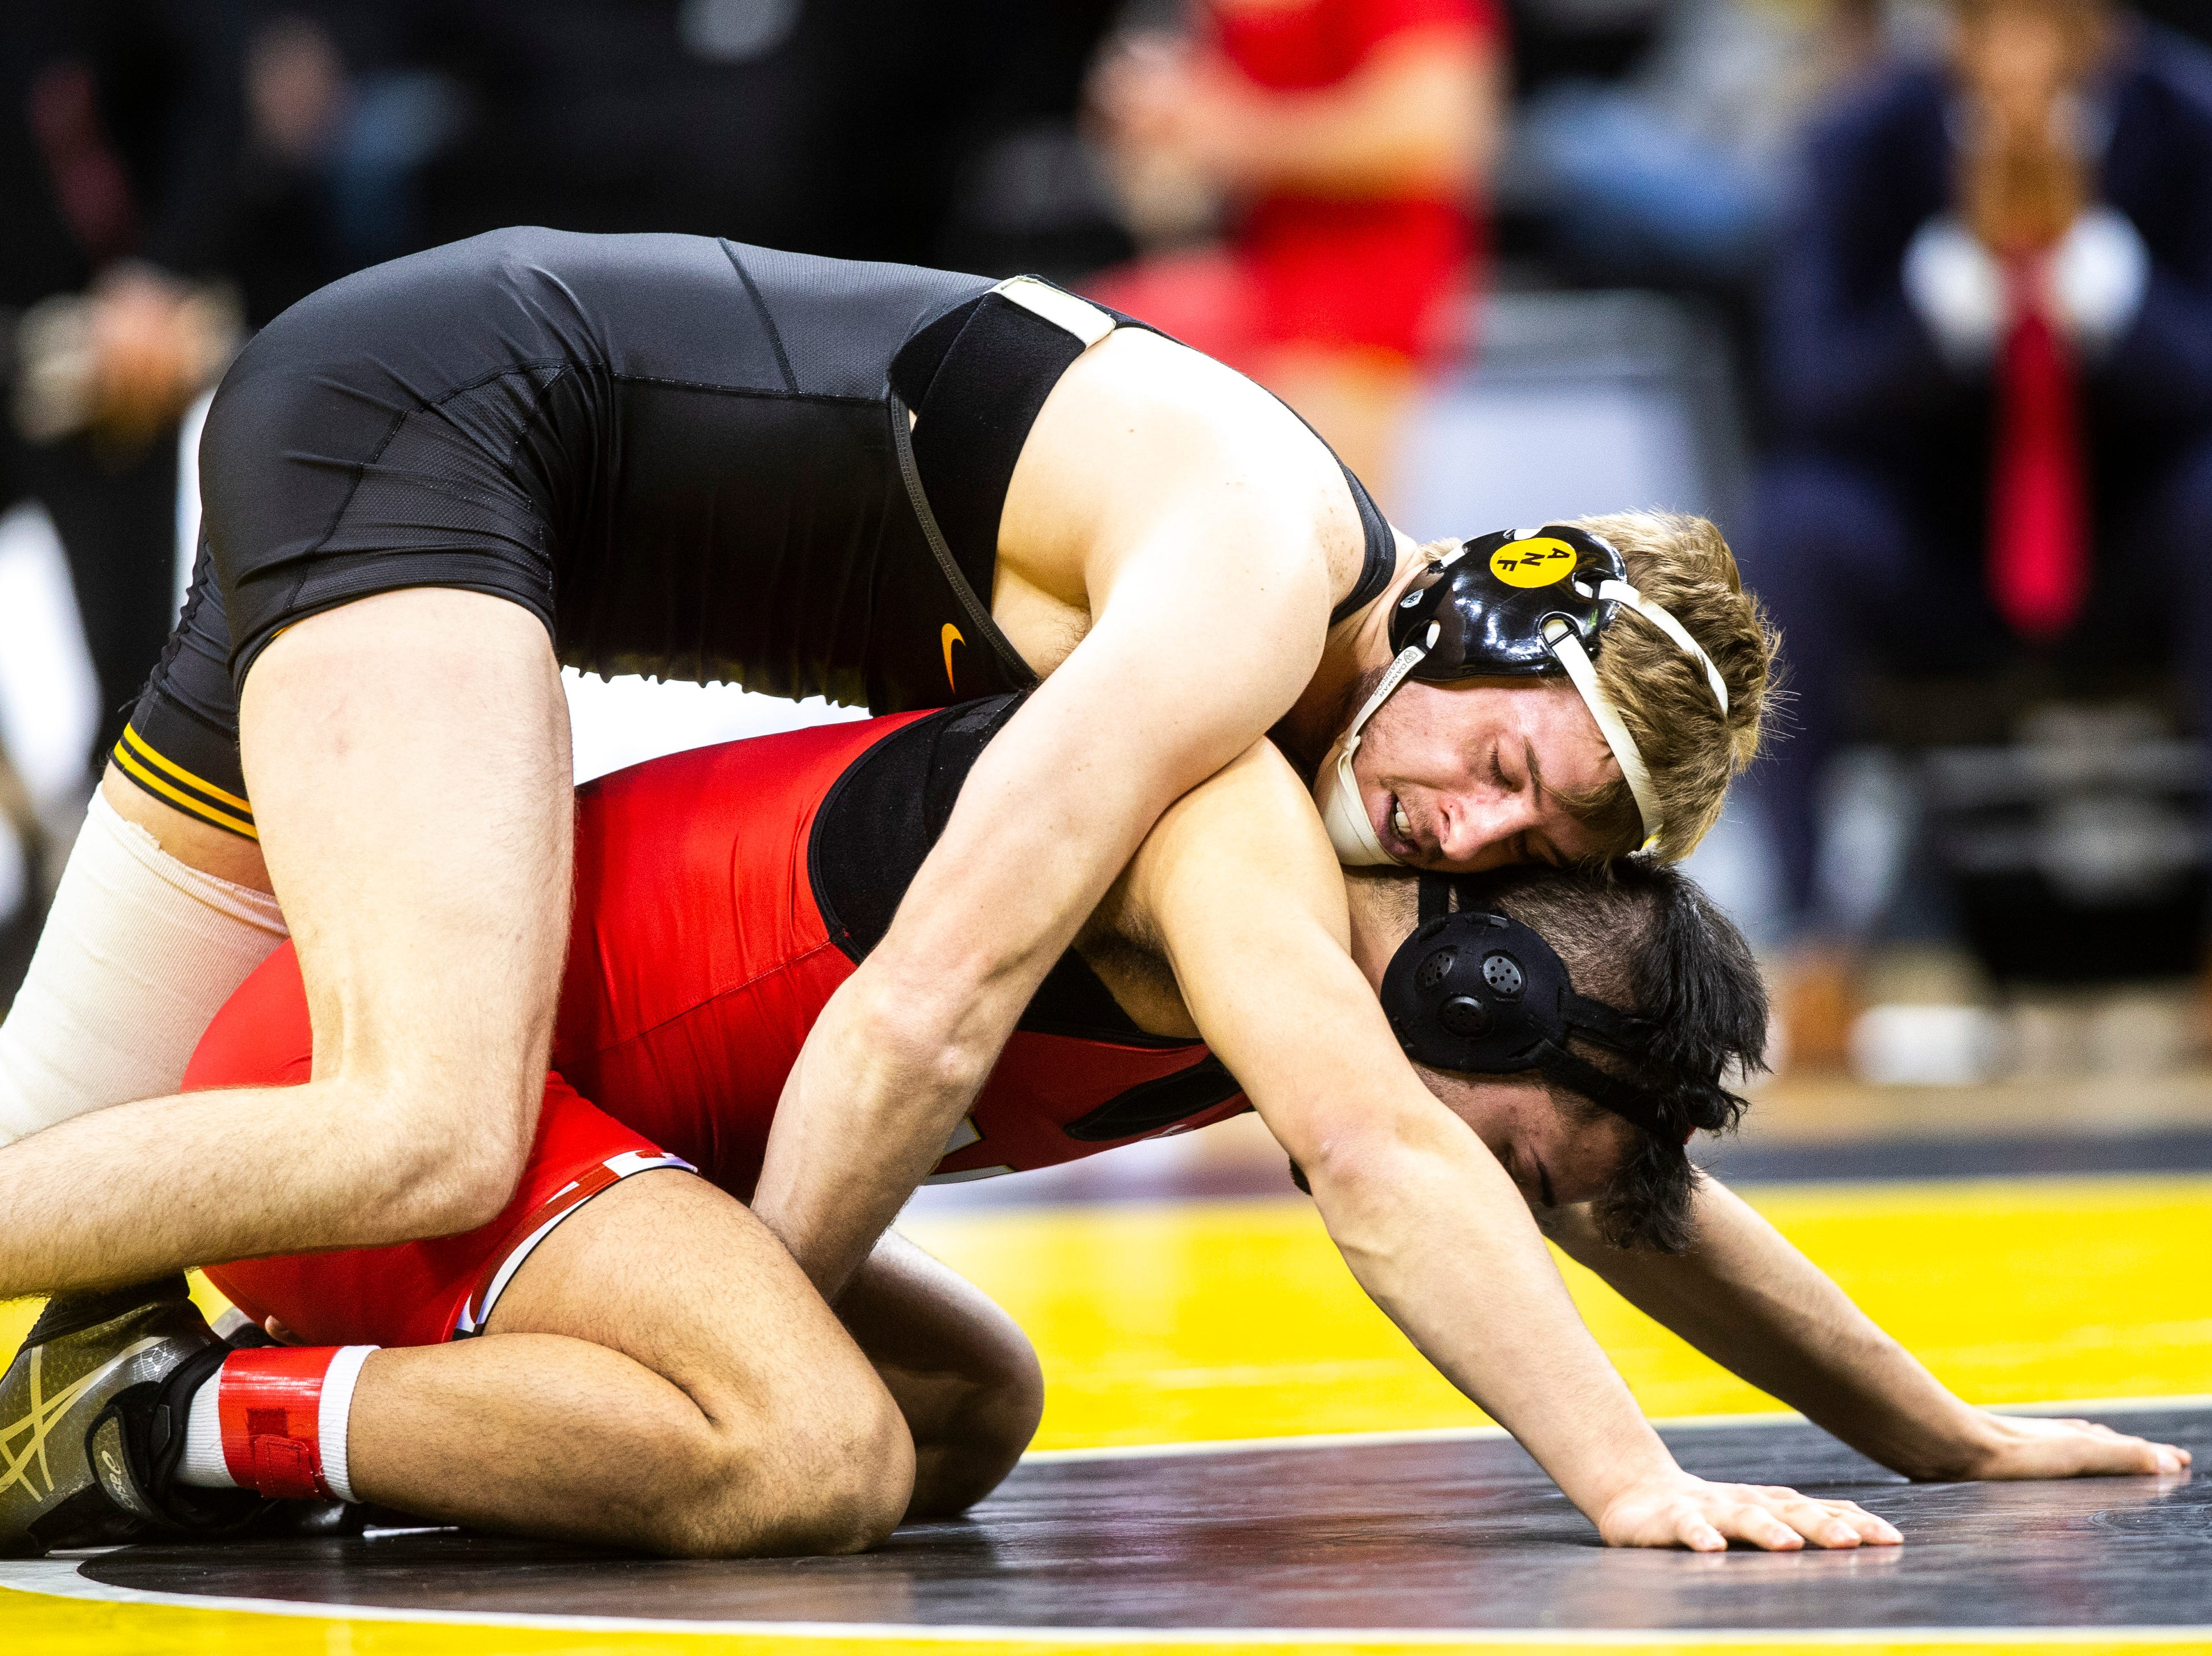 Iowa's Mitch Bowman, left, wrestles Maryland's Josh Uglade at 174 during a NCAA Big Ten Conference wrestling dual on Friday, Feb. 8, 2019 at Carver-Hawkeye Arena in Iowa City, Iowa.